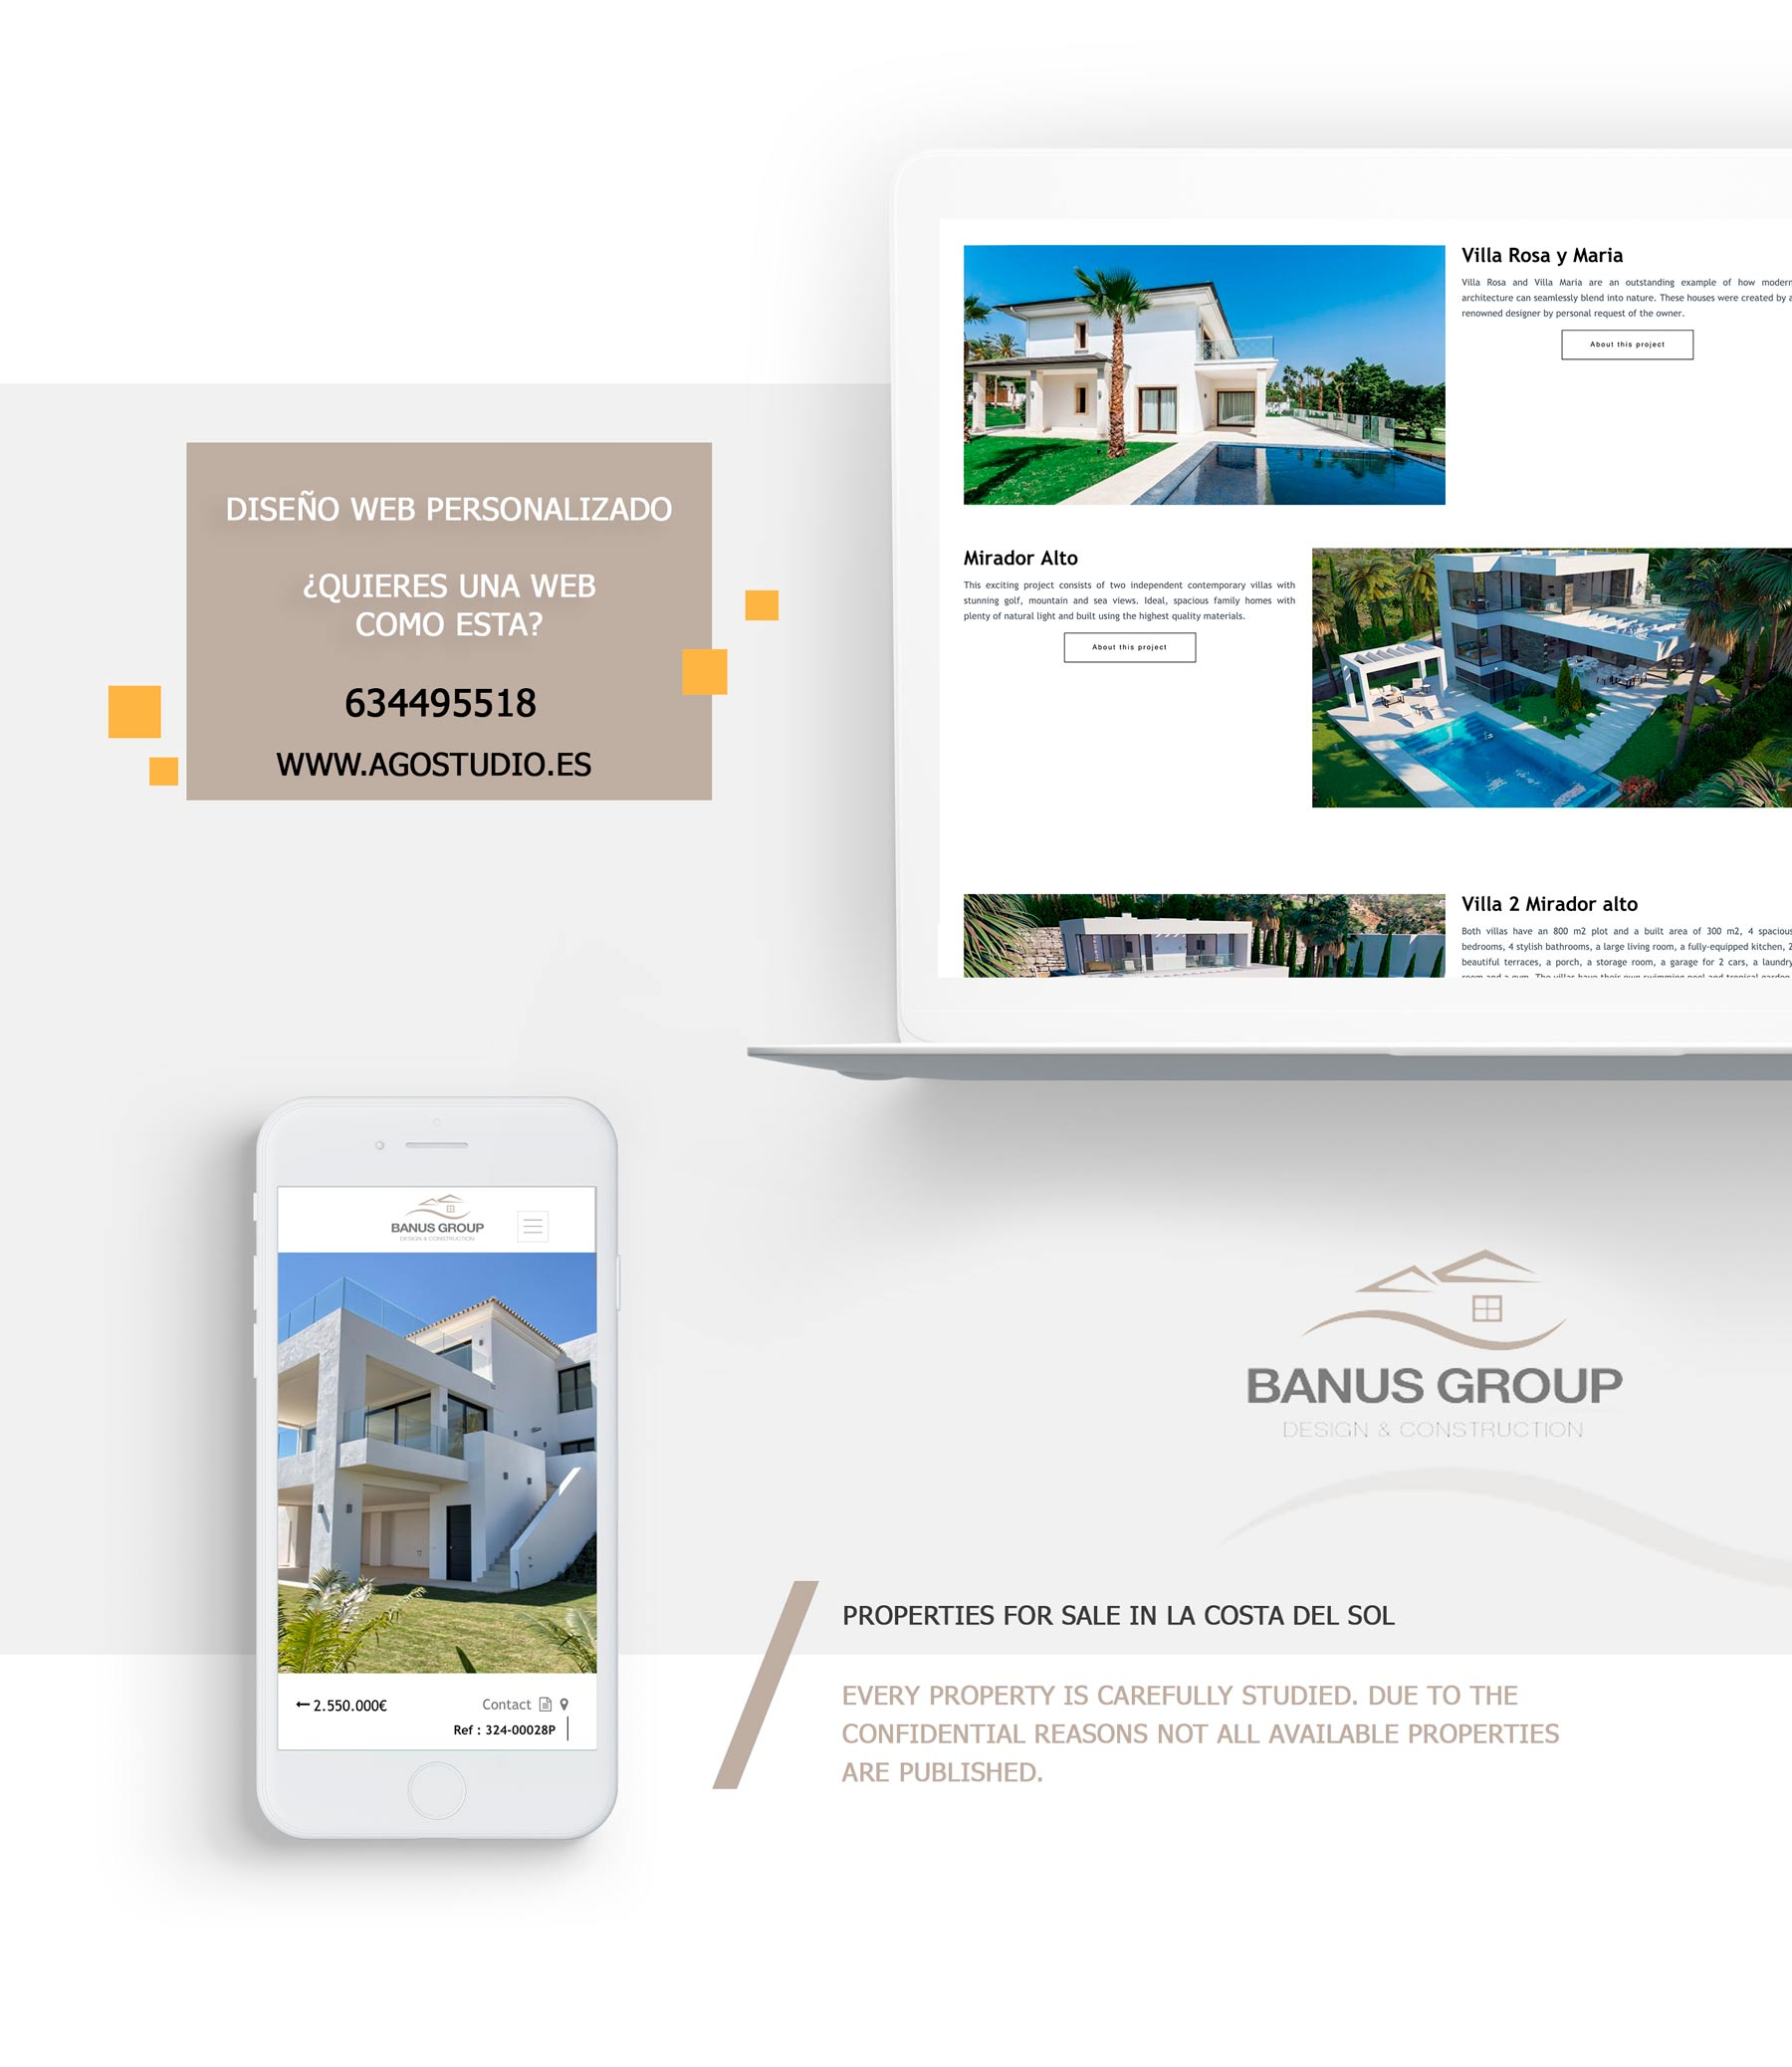 Web Design by property in Marbella - Banus Group - Proyect